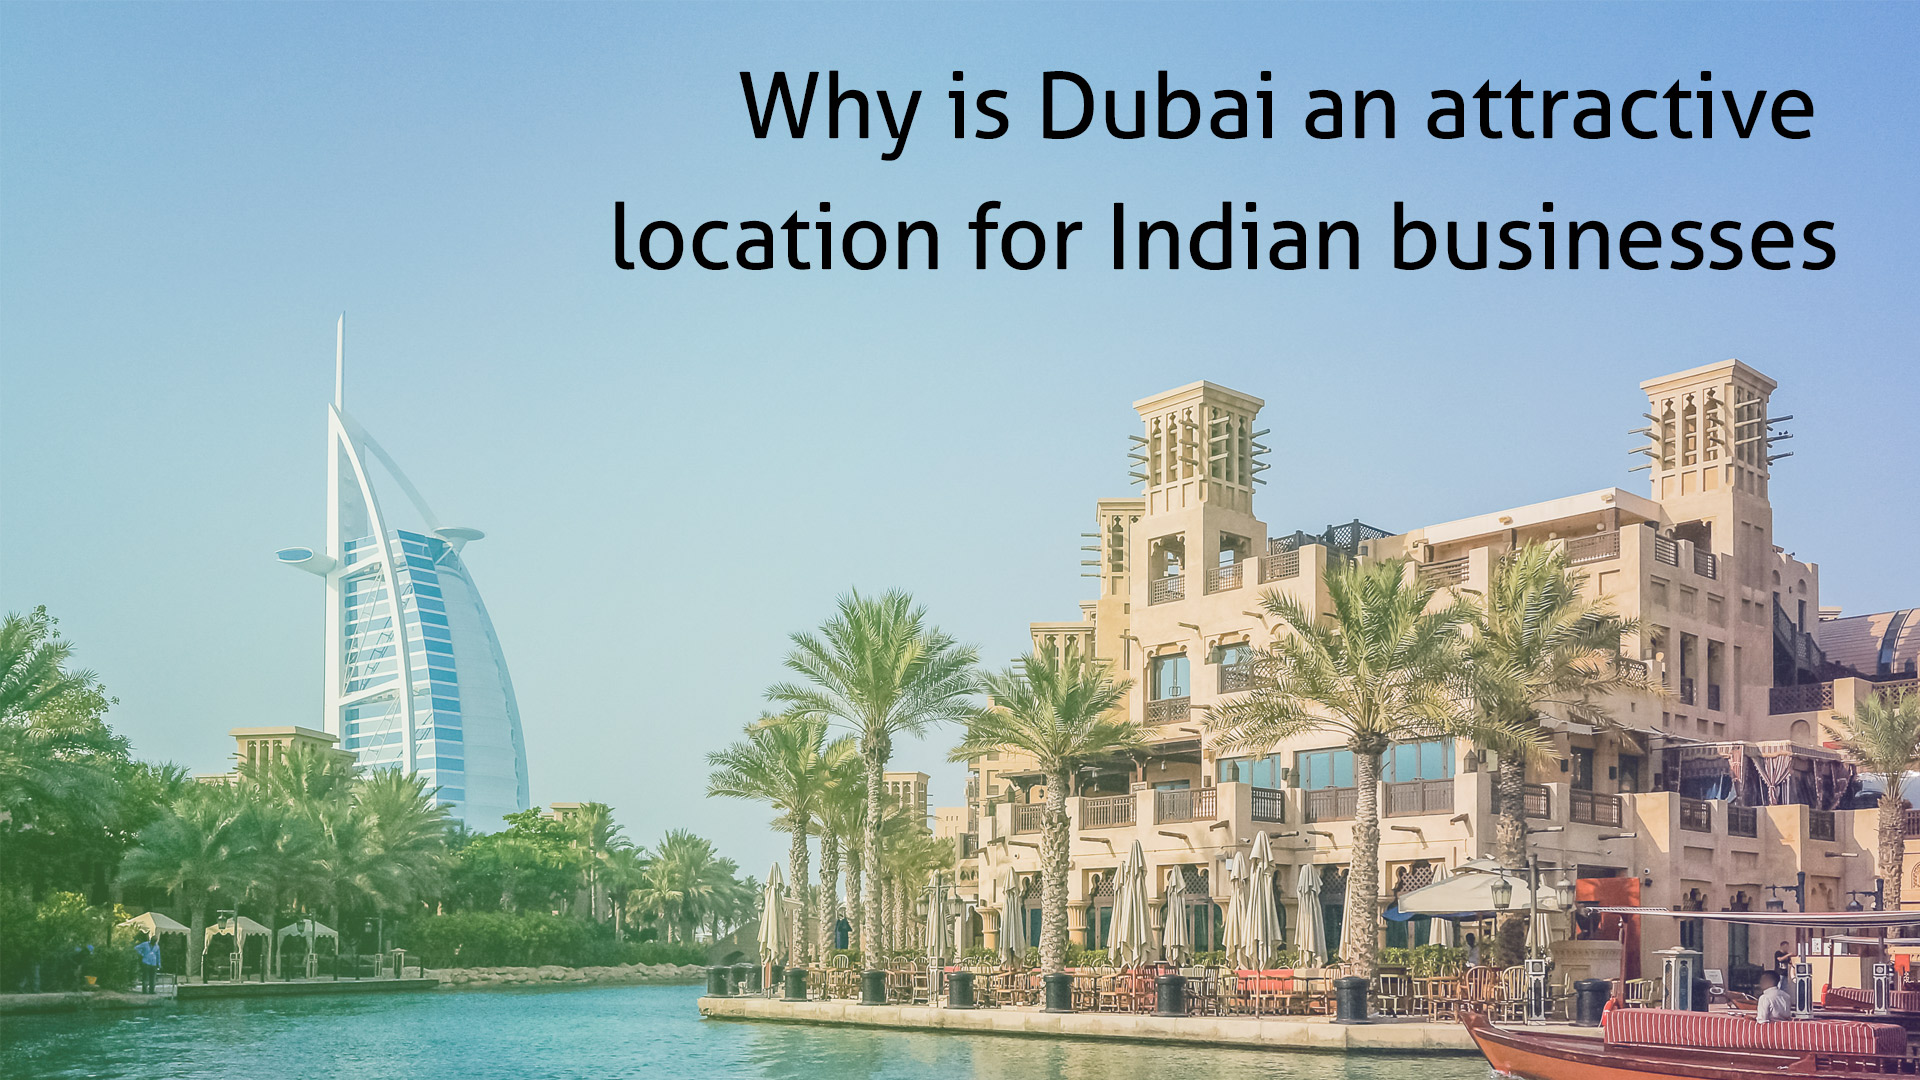 Why is Dubai an attractive location for Indian businesses